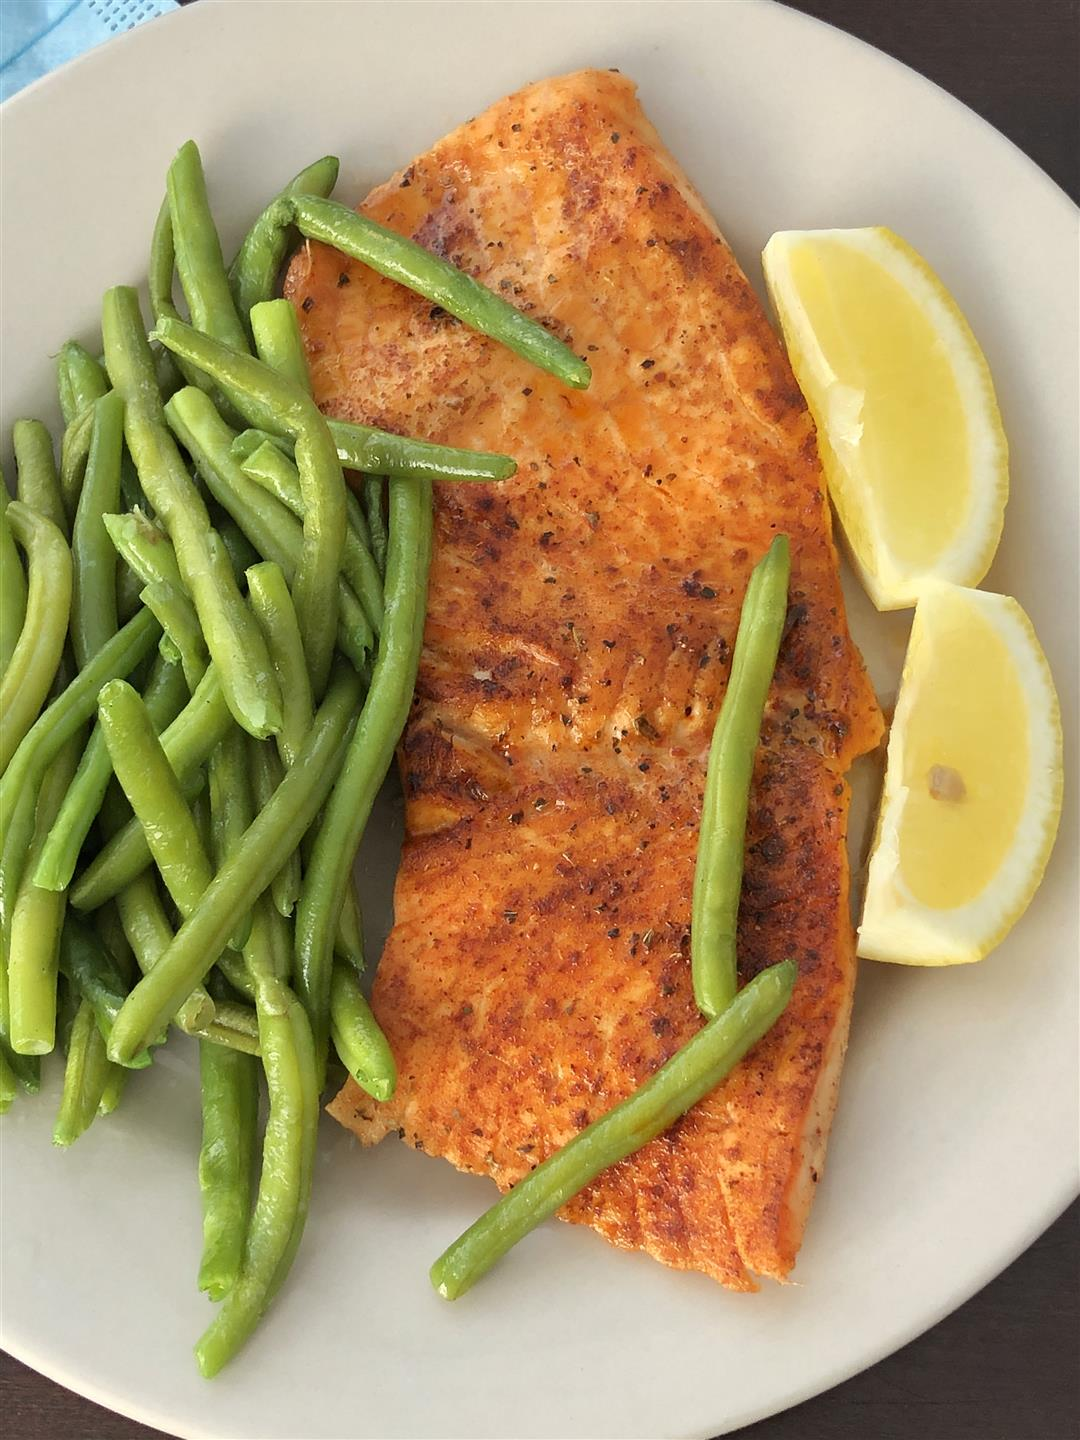 Broiled Salmon with green string beans